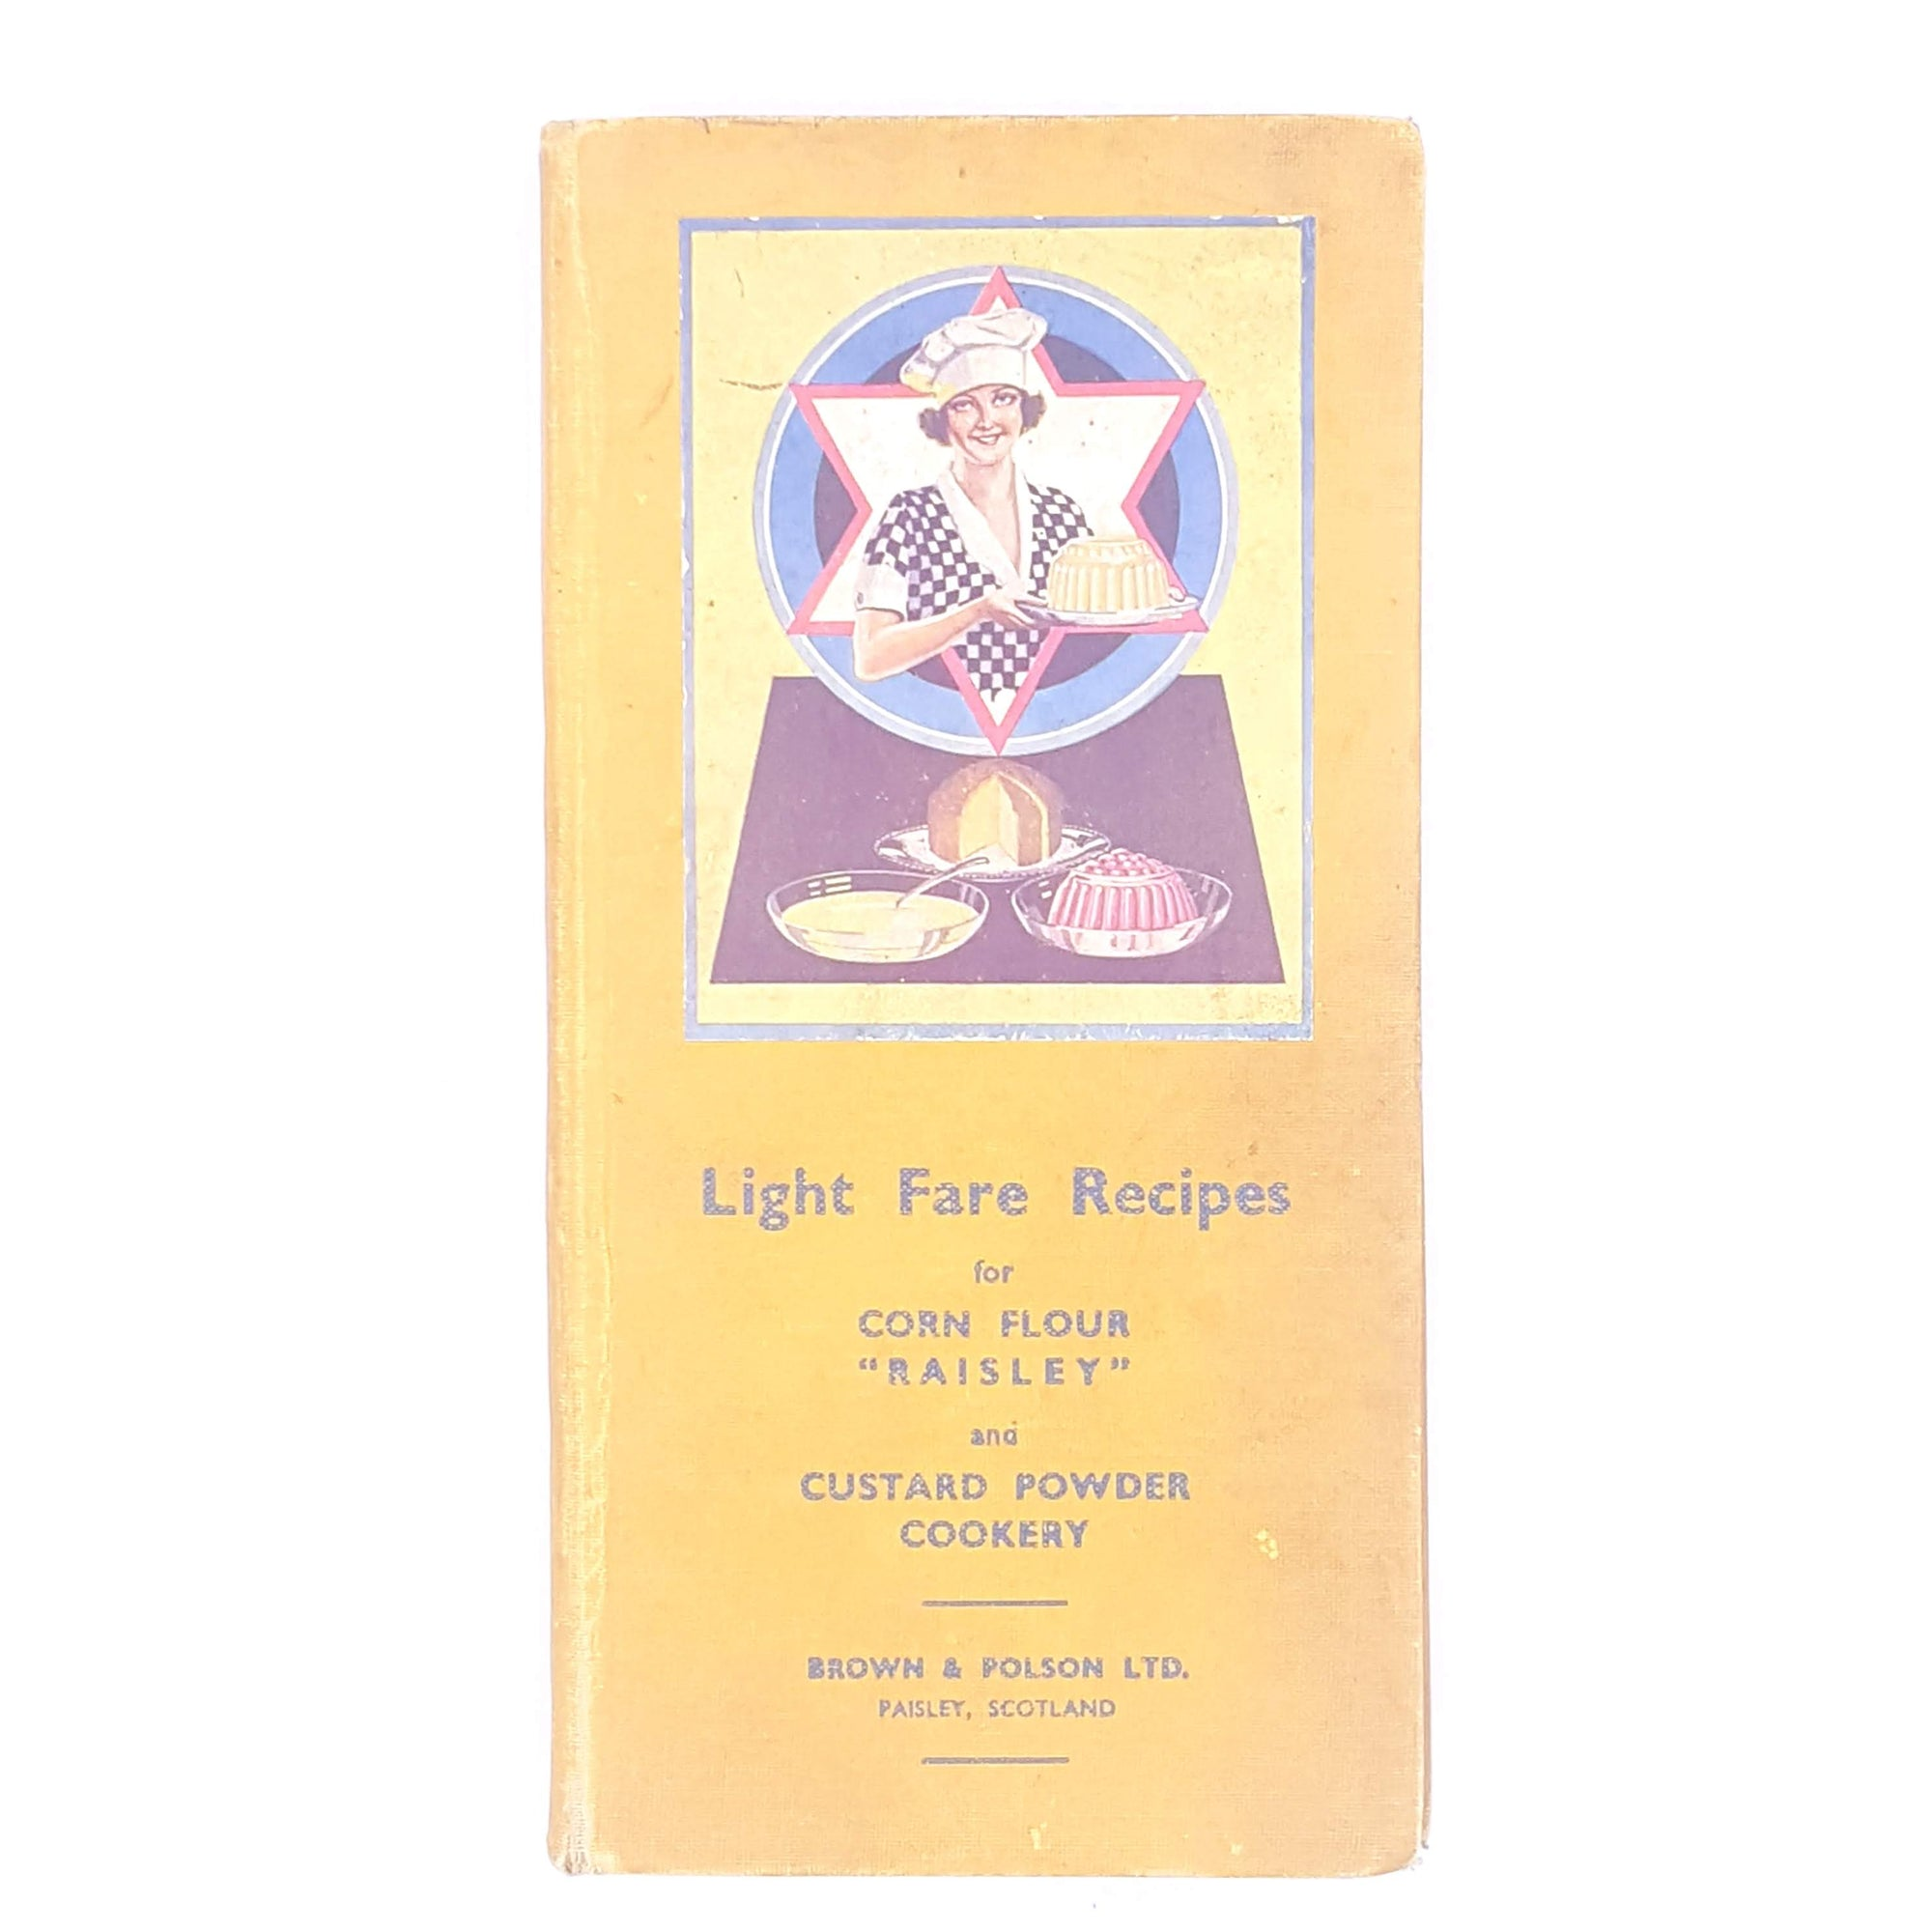 Light Fare Recipes by Brown and Polson 1932